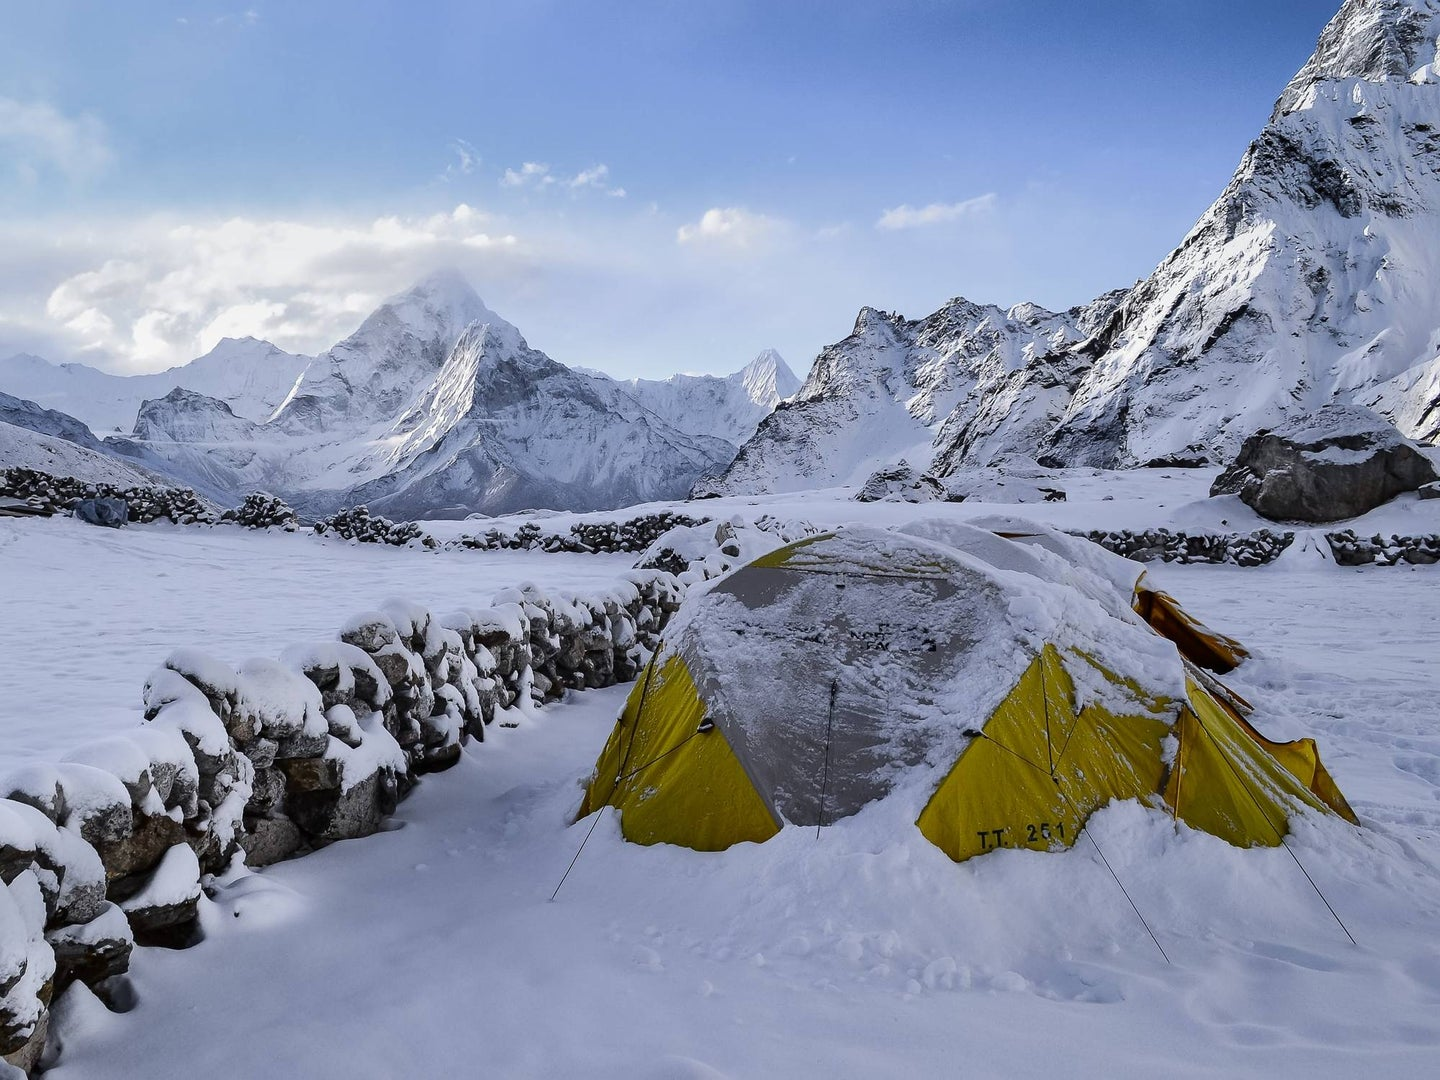 Green camping tent in the middle of a snowy mountain